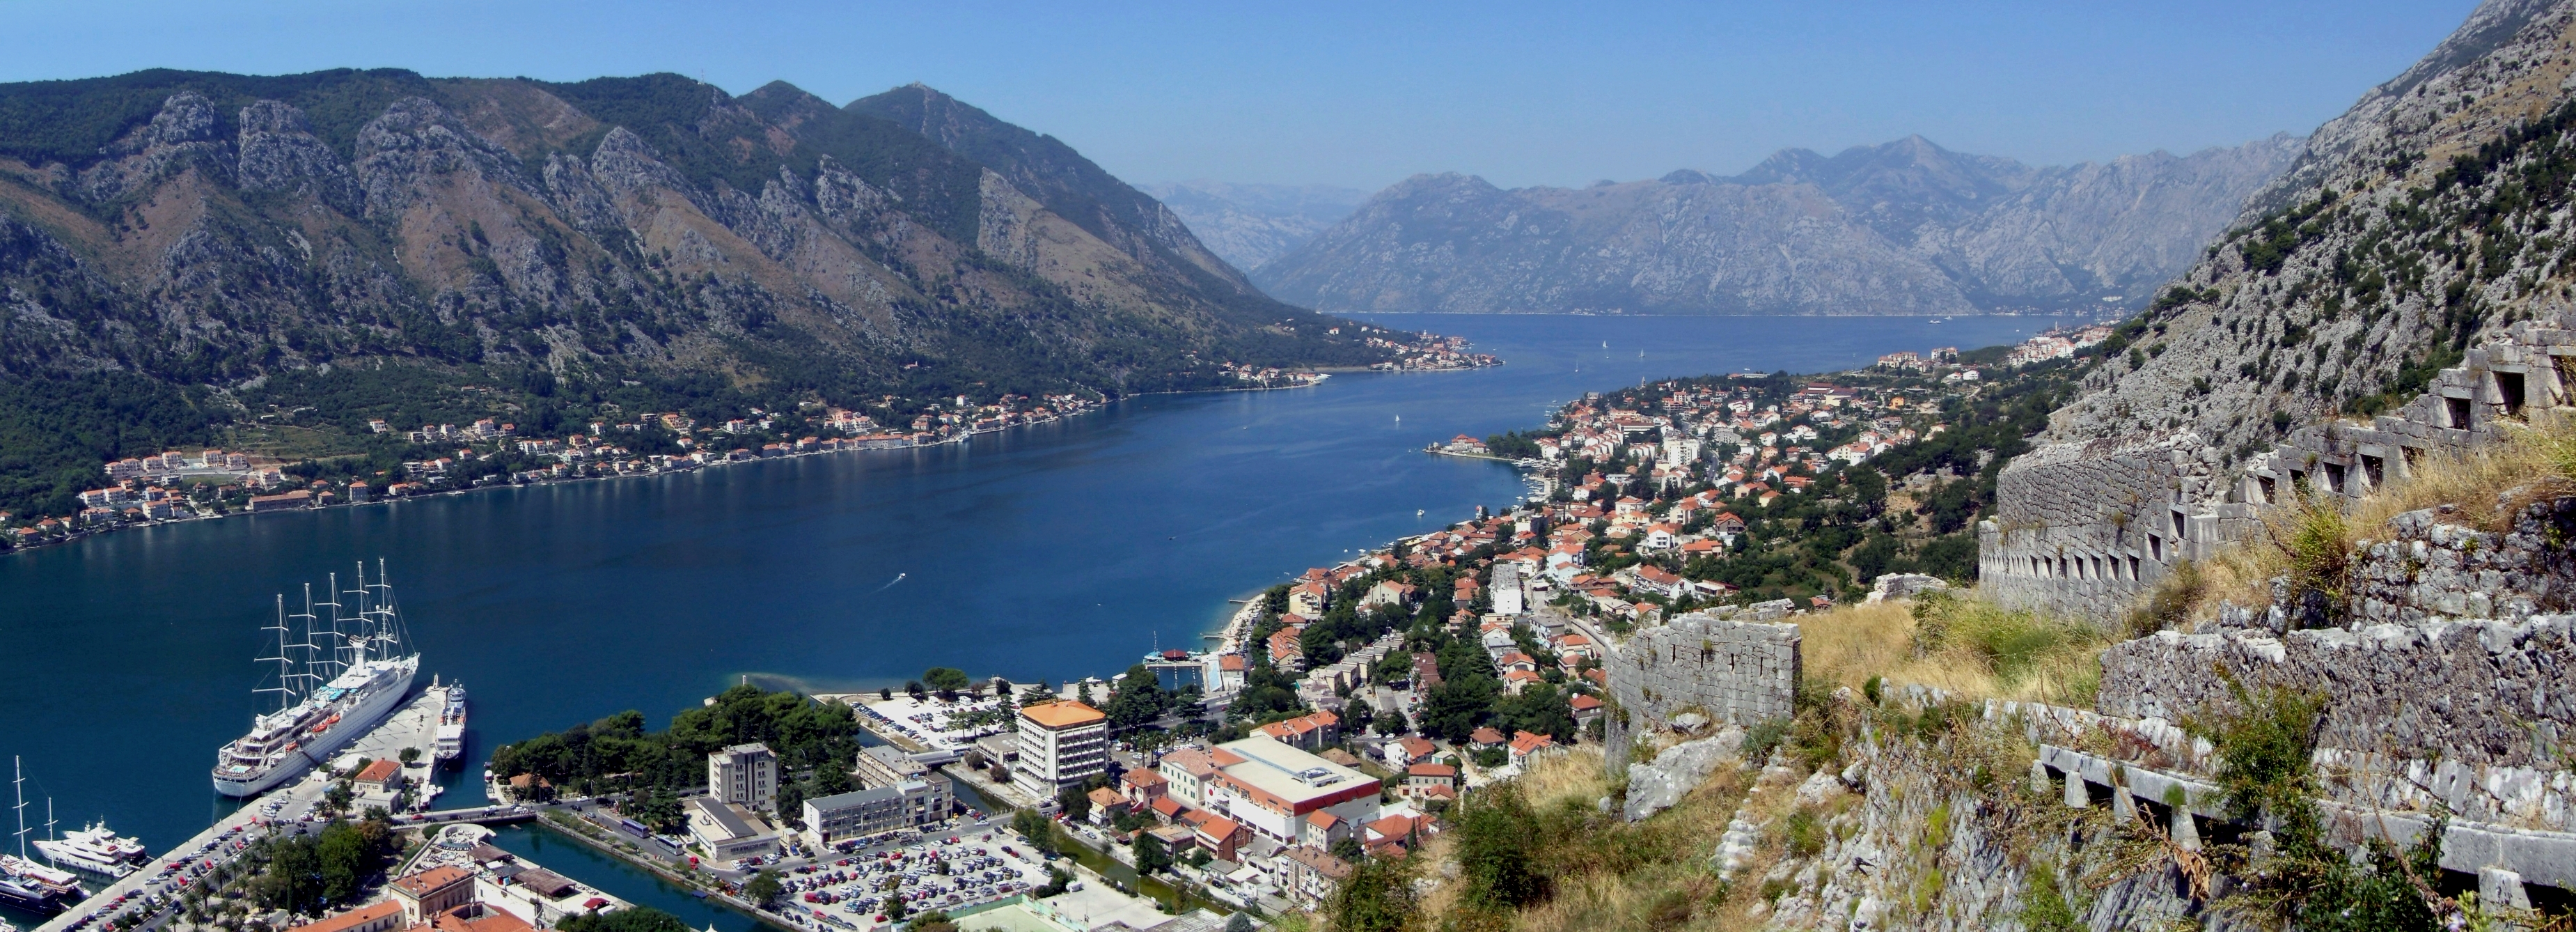 In Kotor  Can You Travel To Dantooine Twice